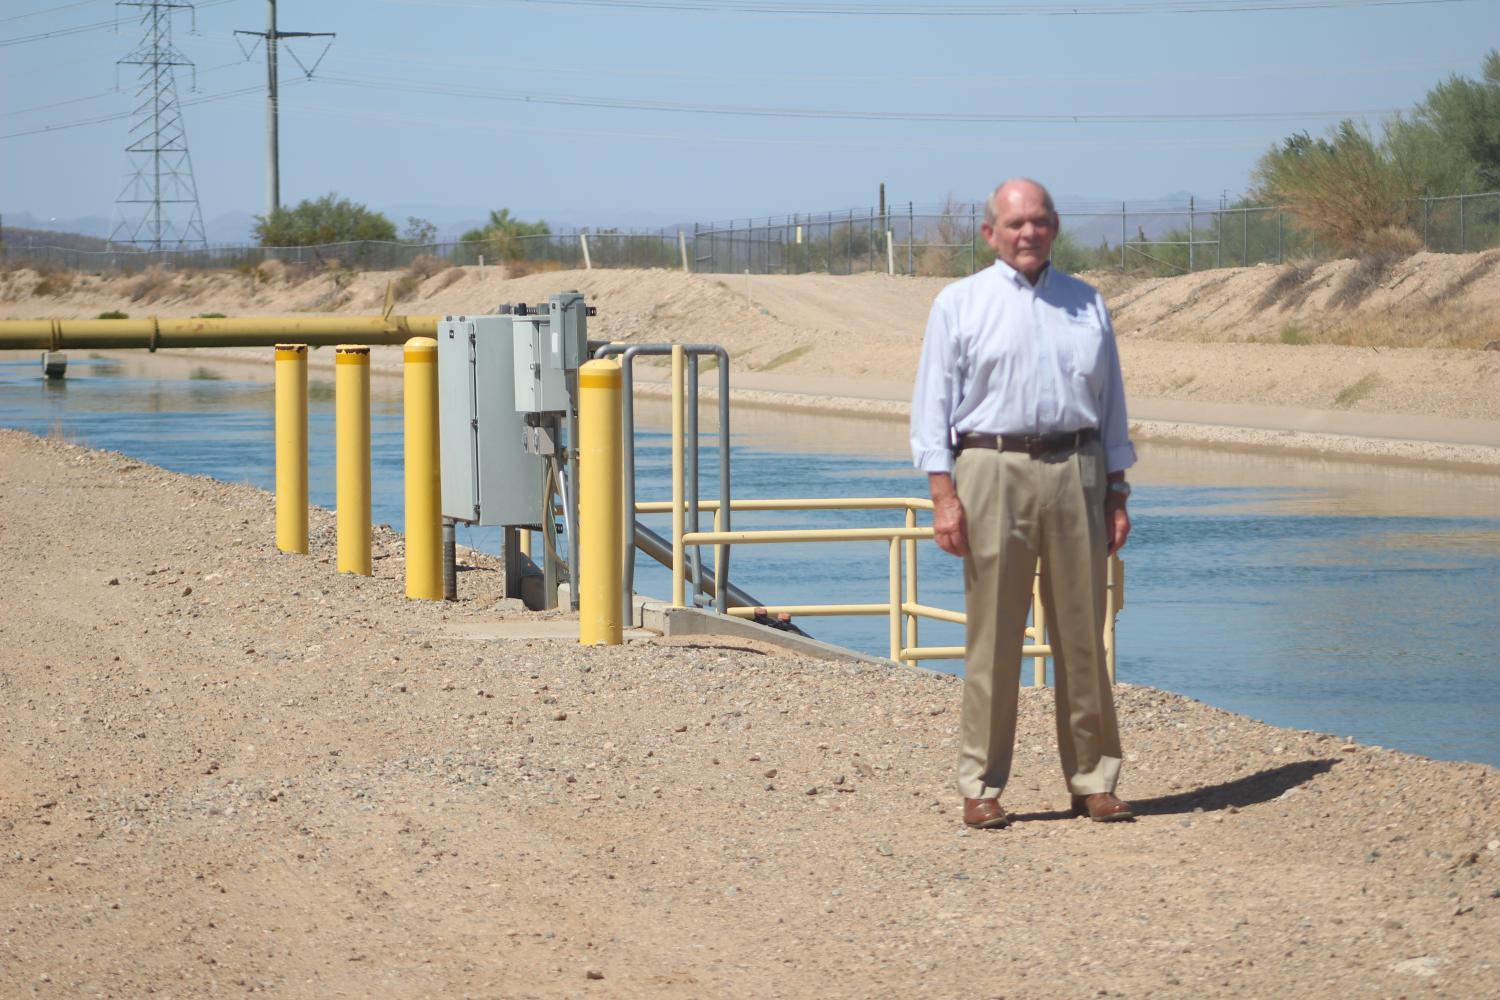 John Harrison has worked on the Central Arizona Project for over 50 years.